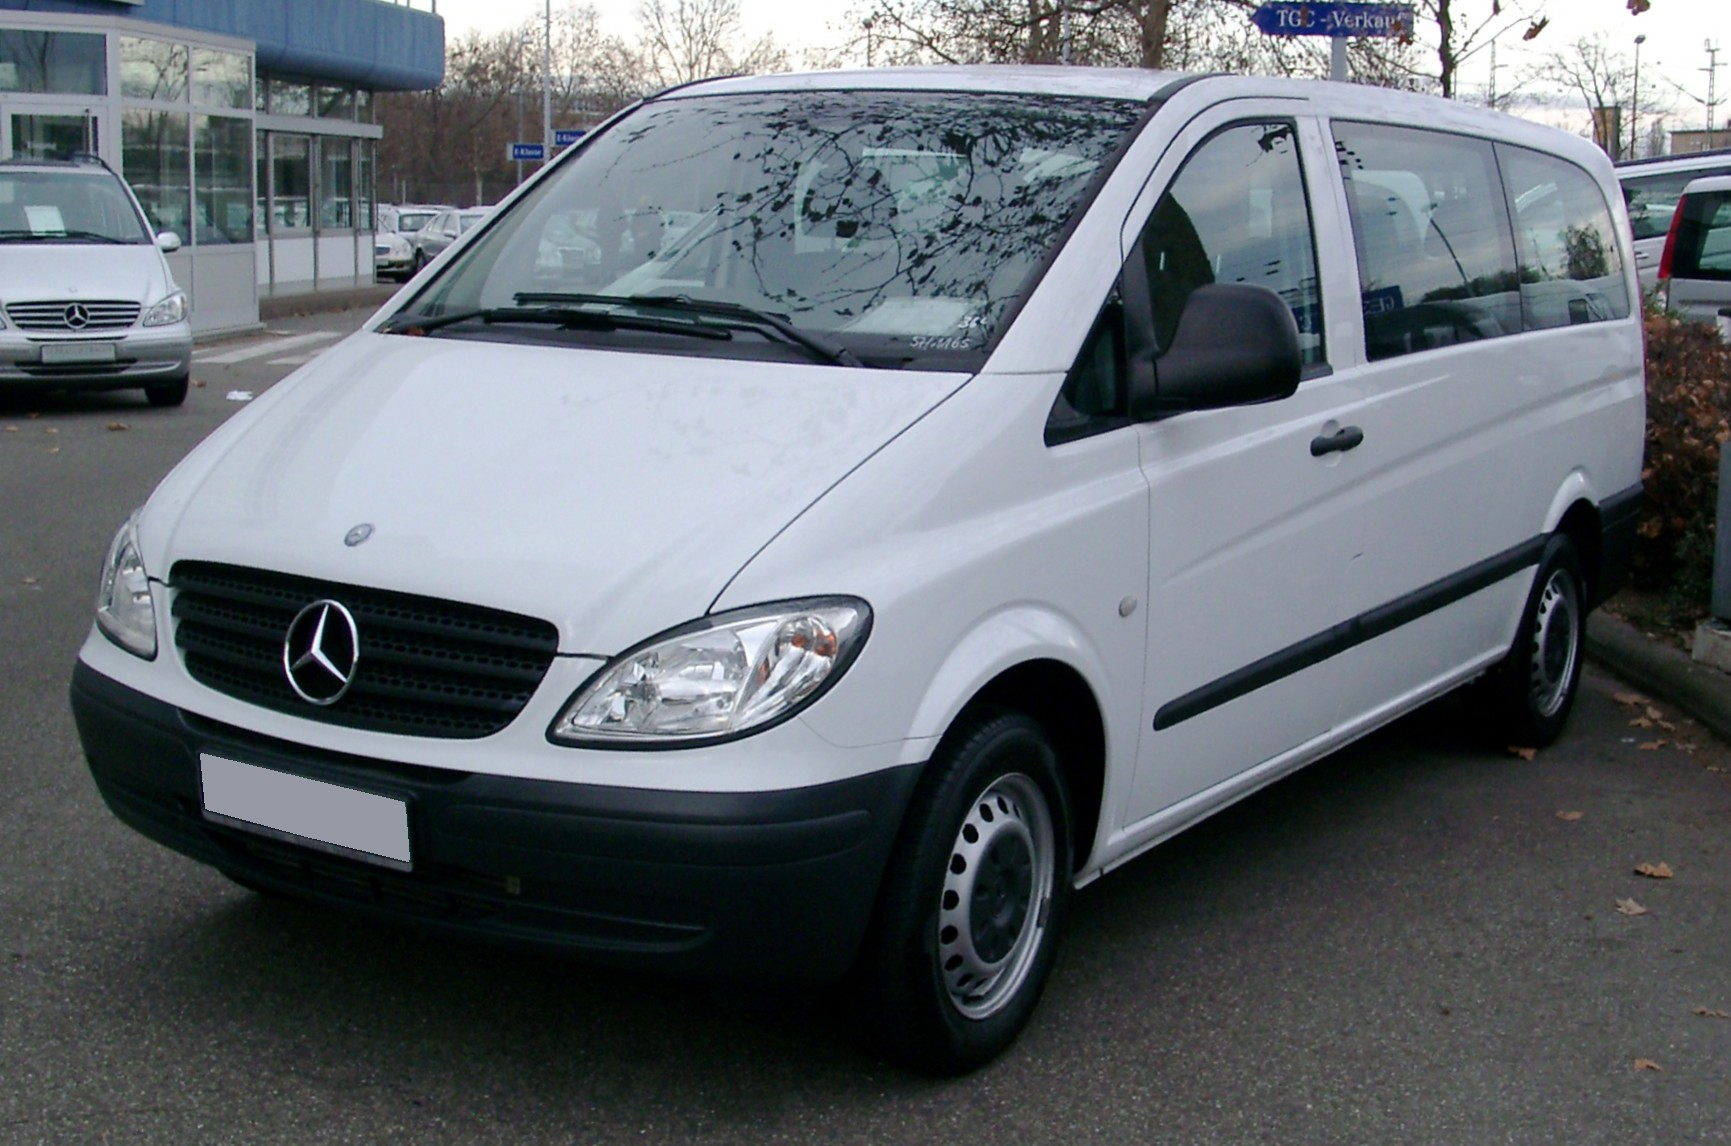 mercedes benz vito reviews mercedes benz vito car reviews. Black Bedroom Furniture Sets. Home Design Ideas